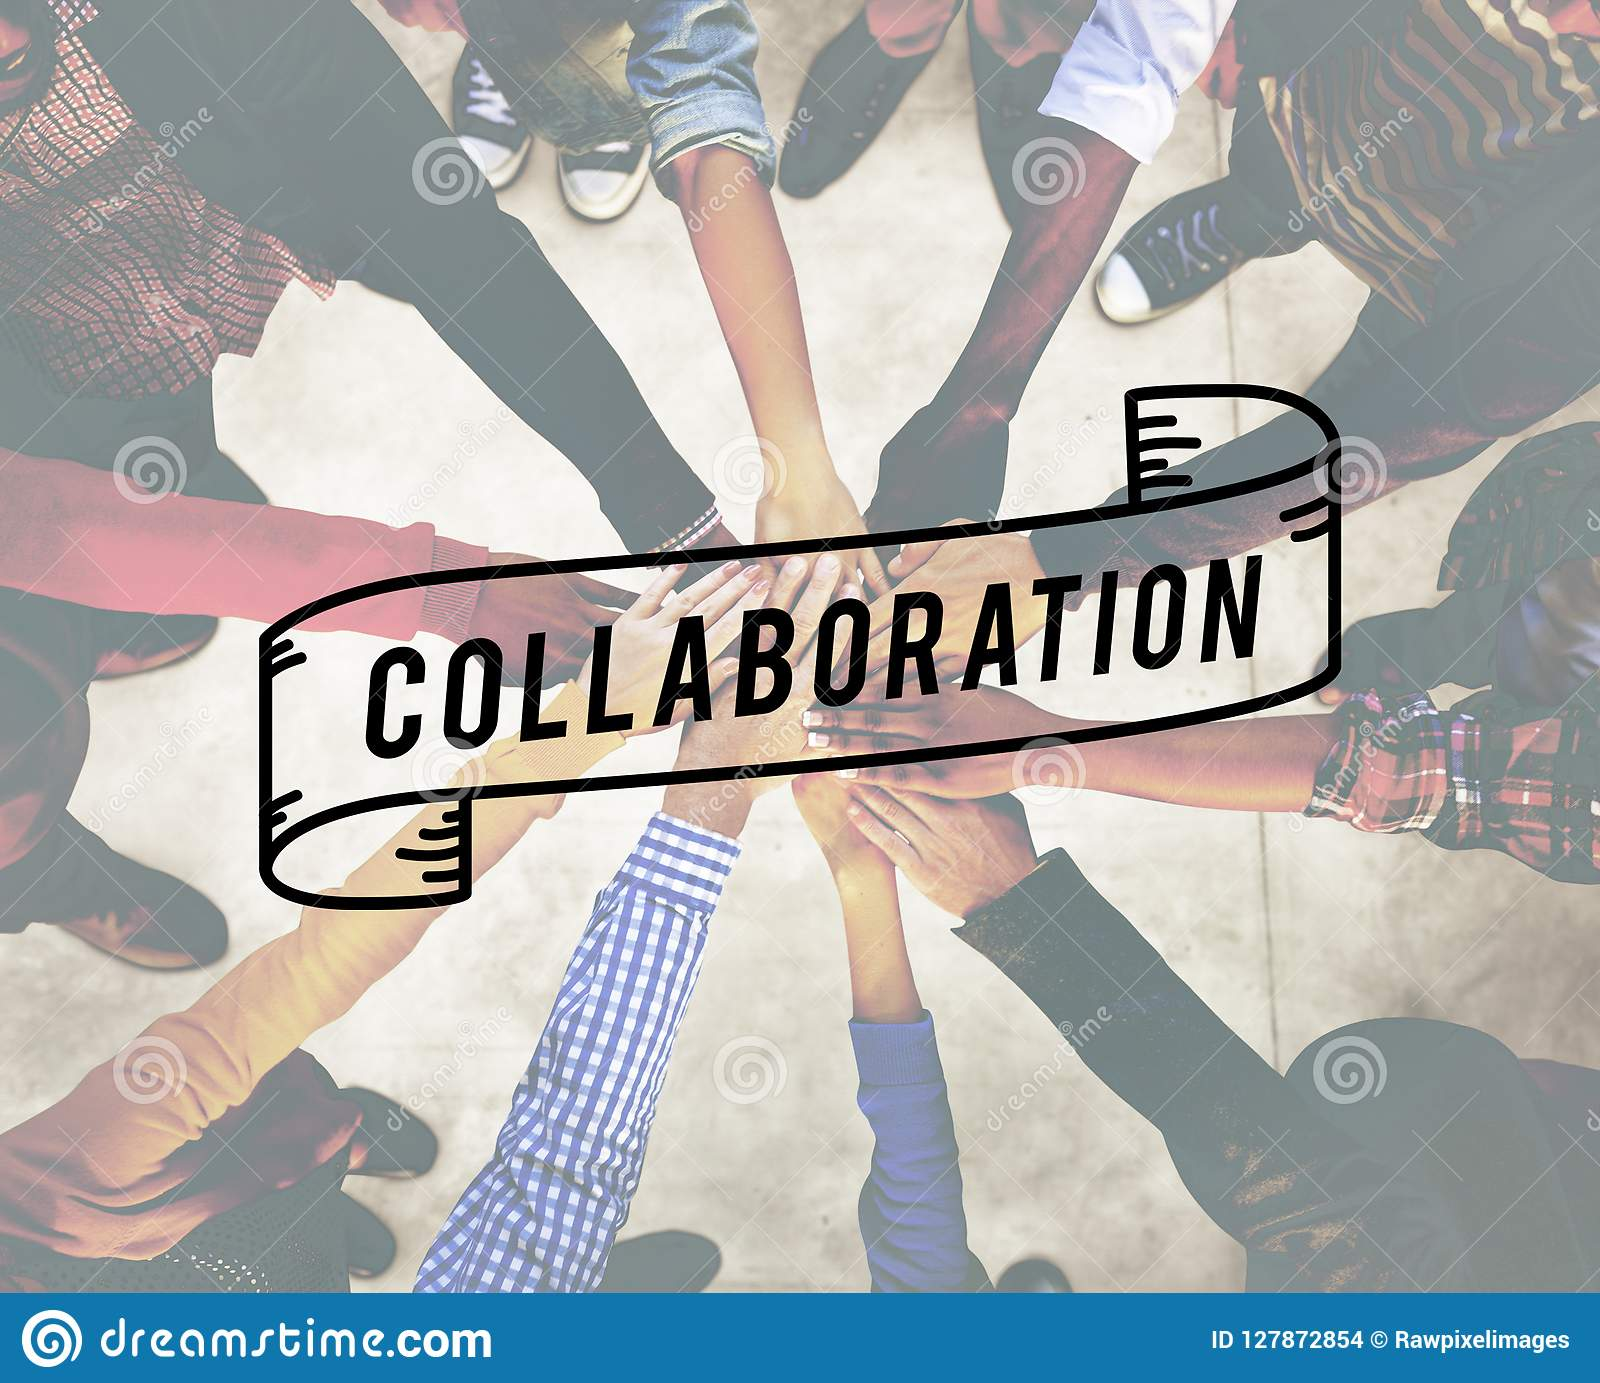 Collaboration Collaborate Connection Corporate Concept